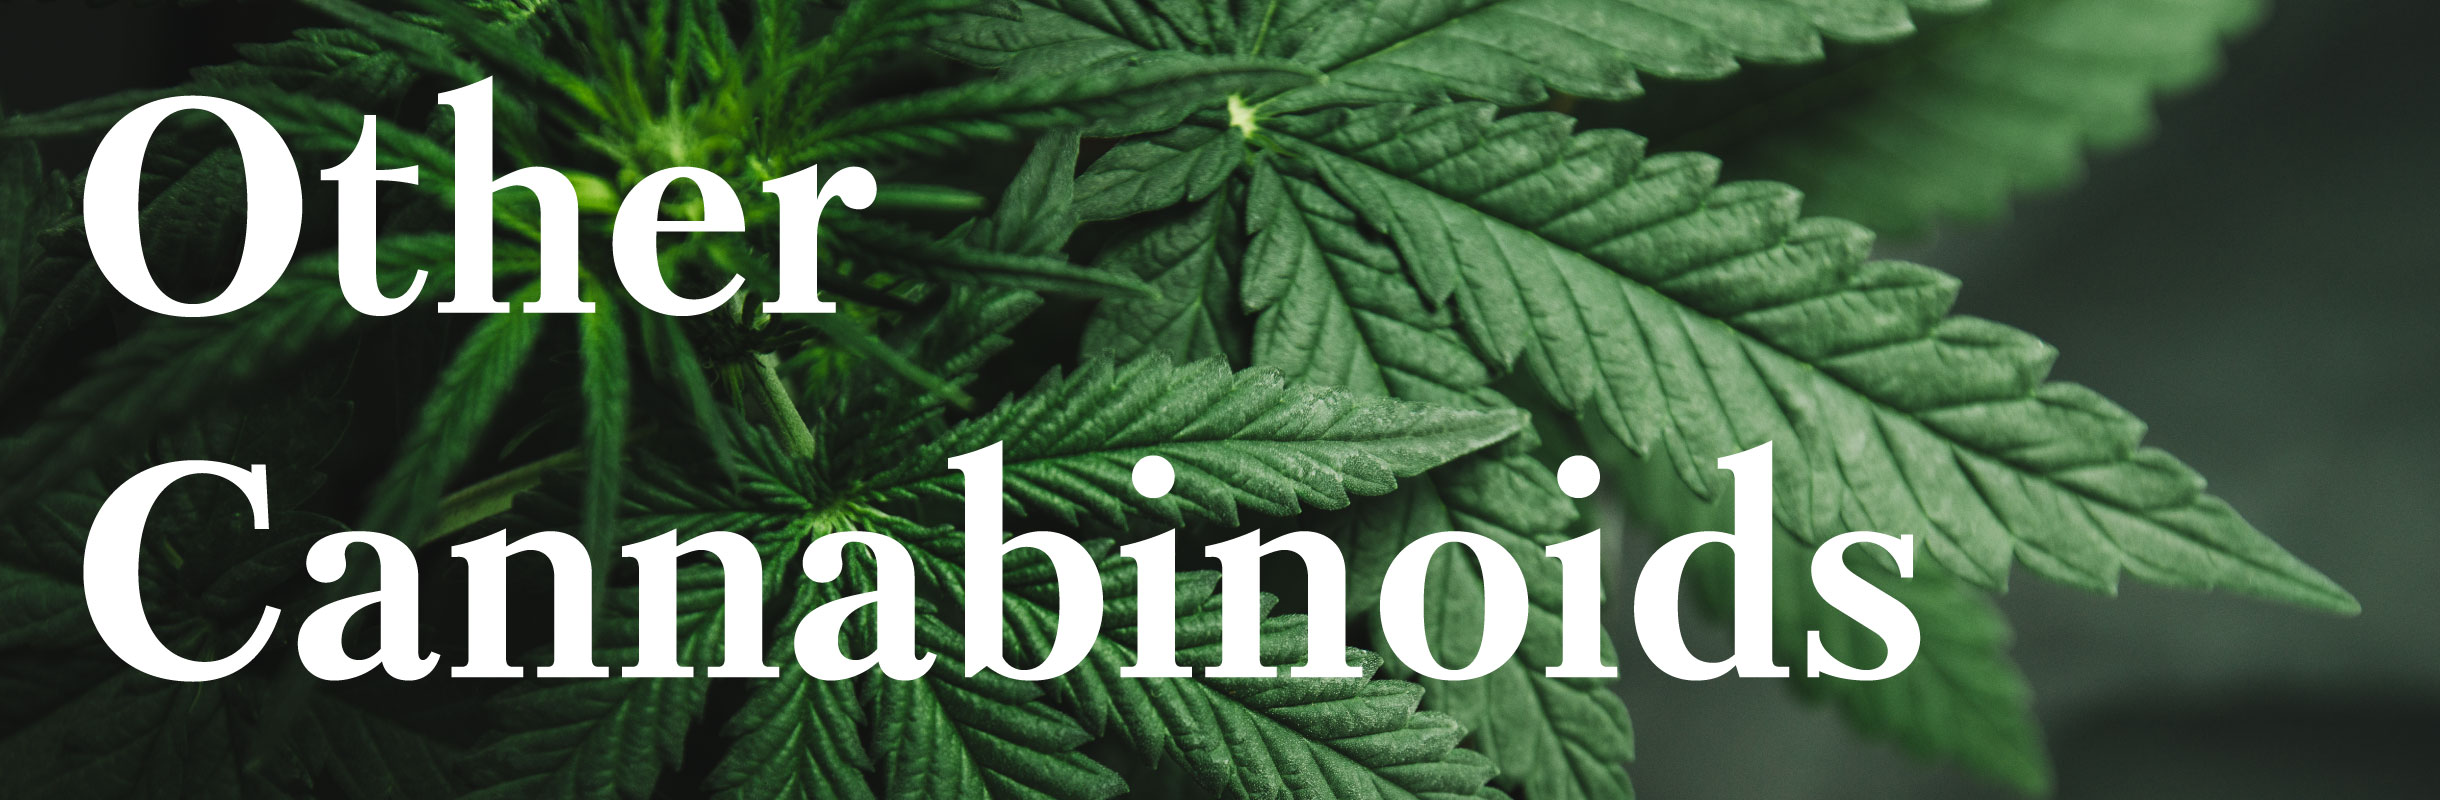 other-cannabinoids-header.jpg